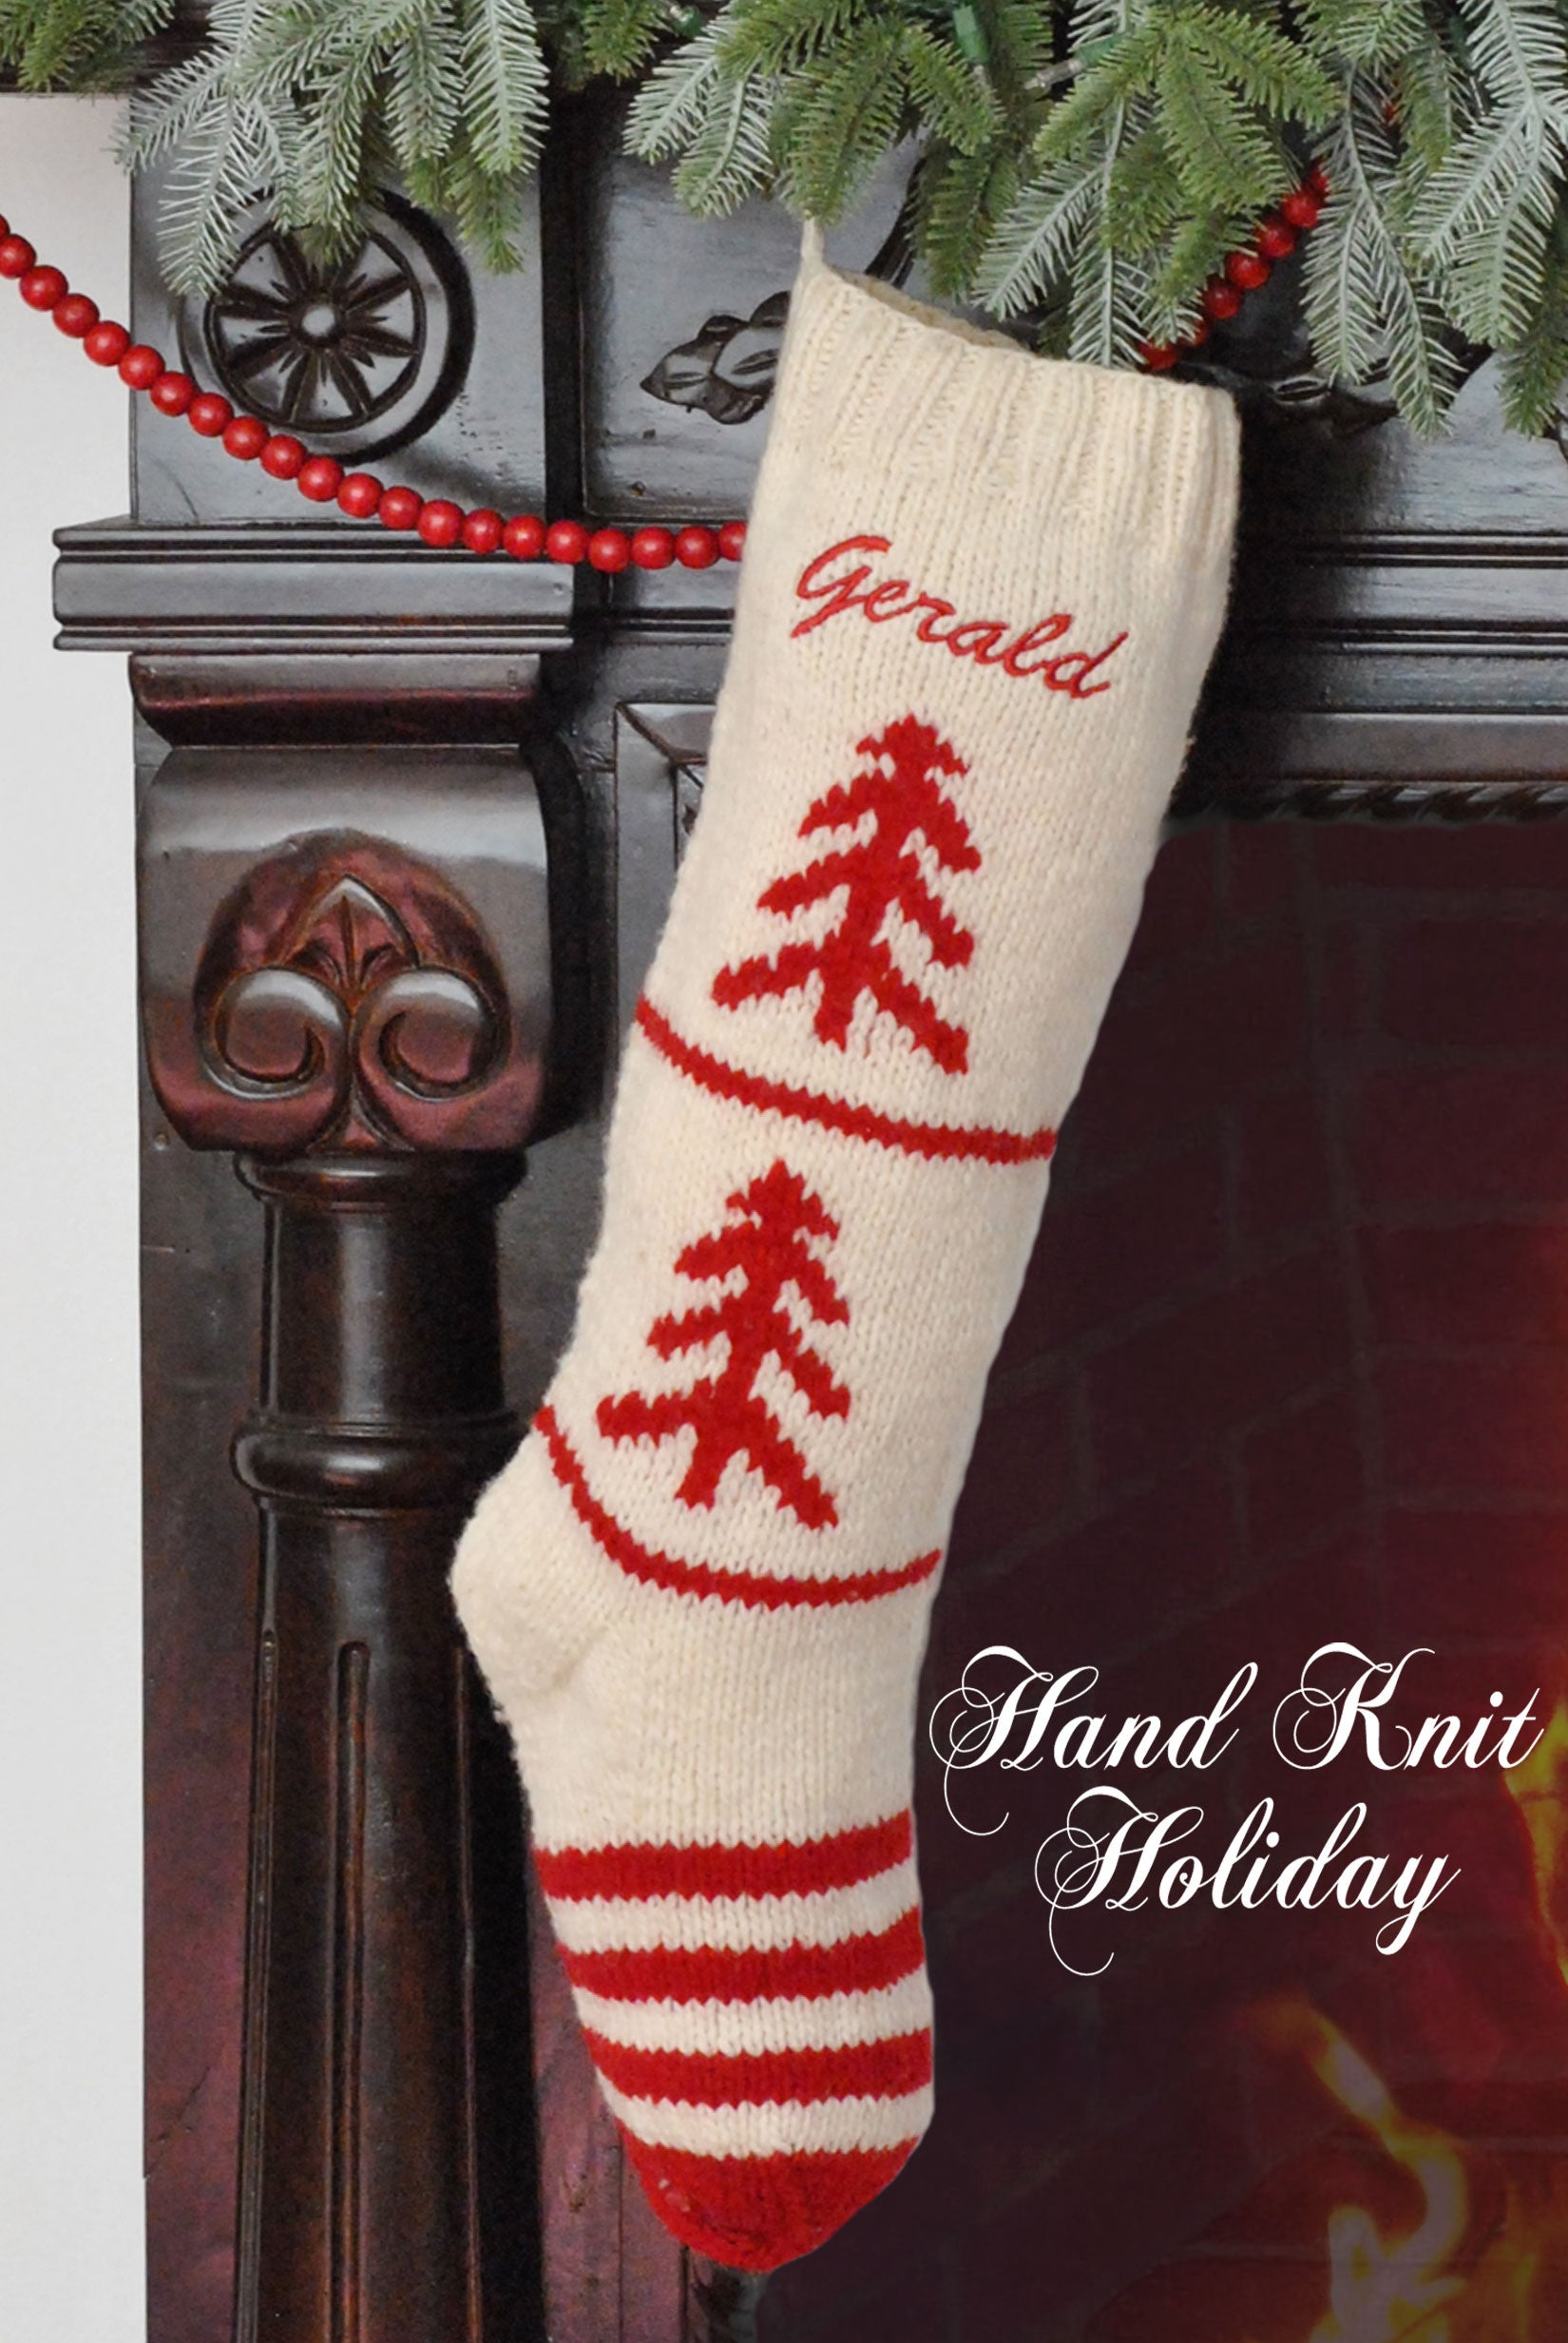 White & Red Hand Knit Wool Christmas Tree Stocking – Hand Knit Holiday